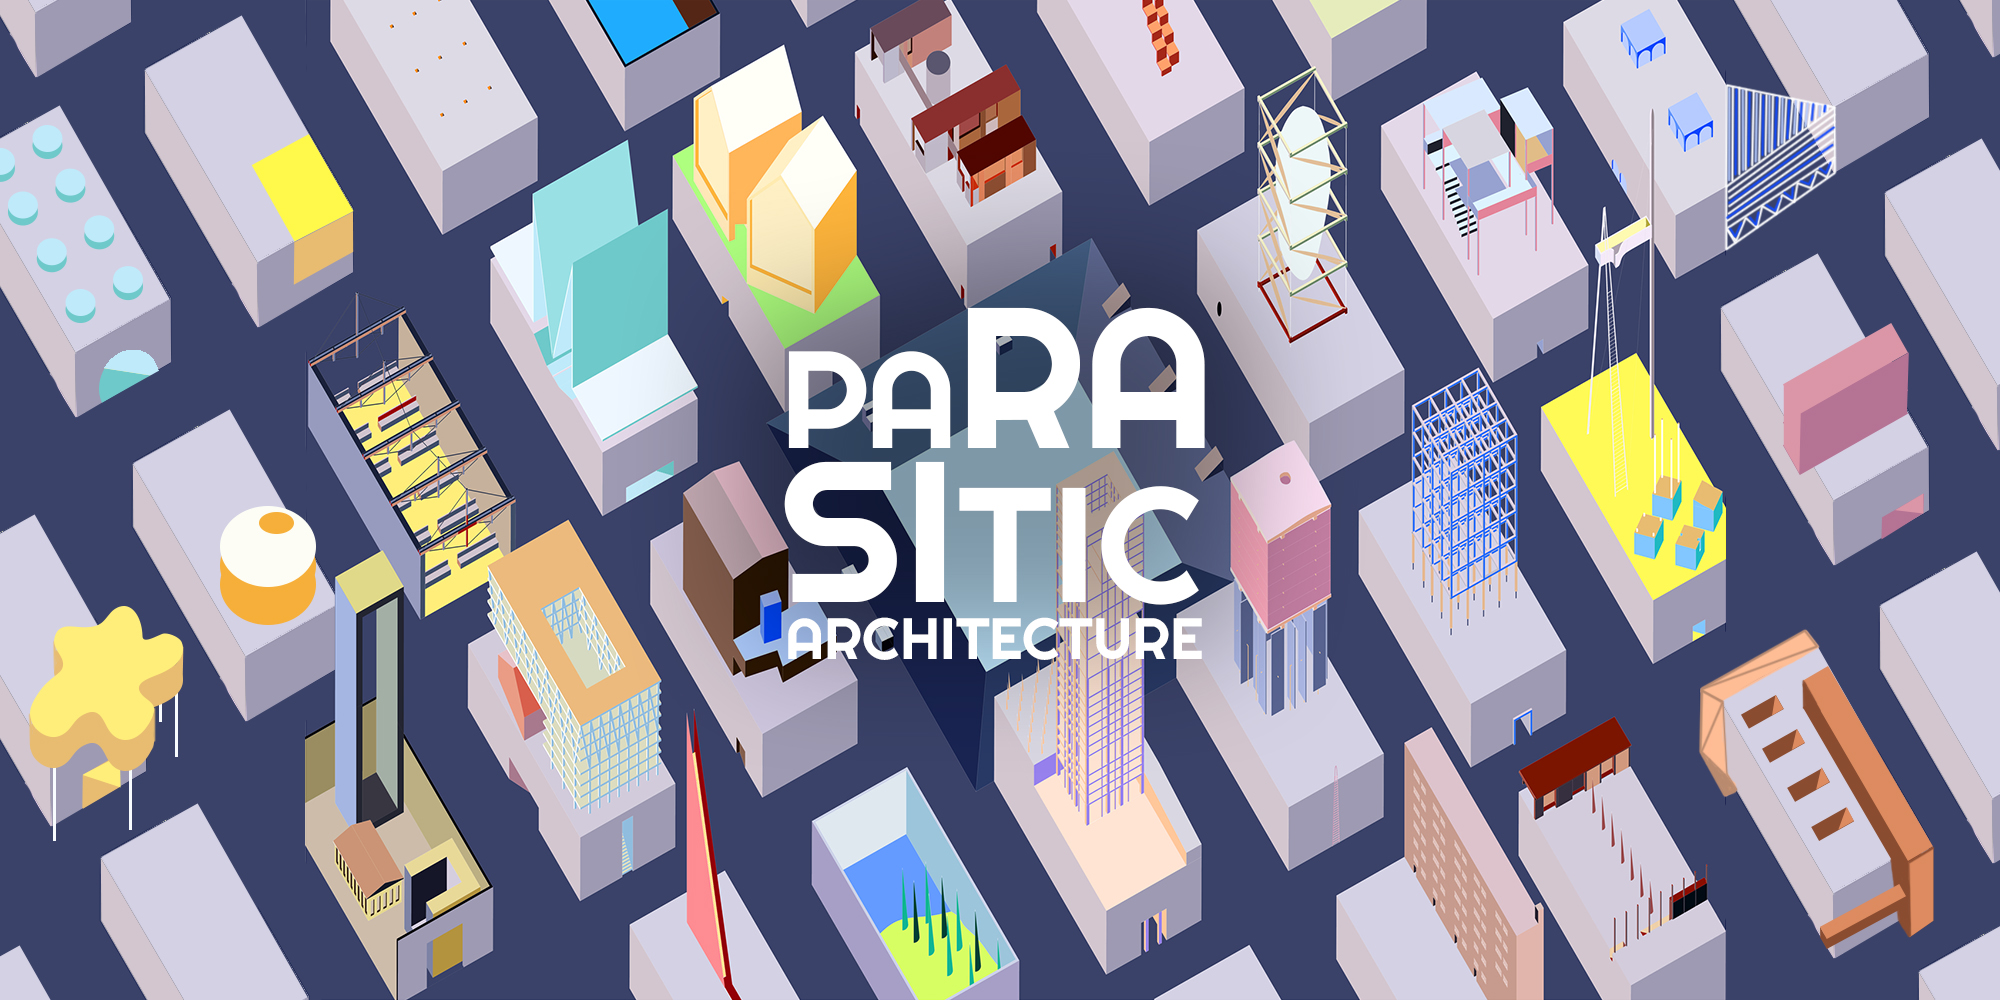 Parasitic Architecture